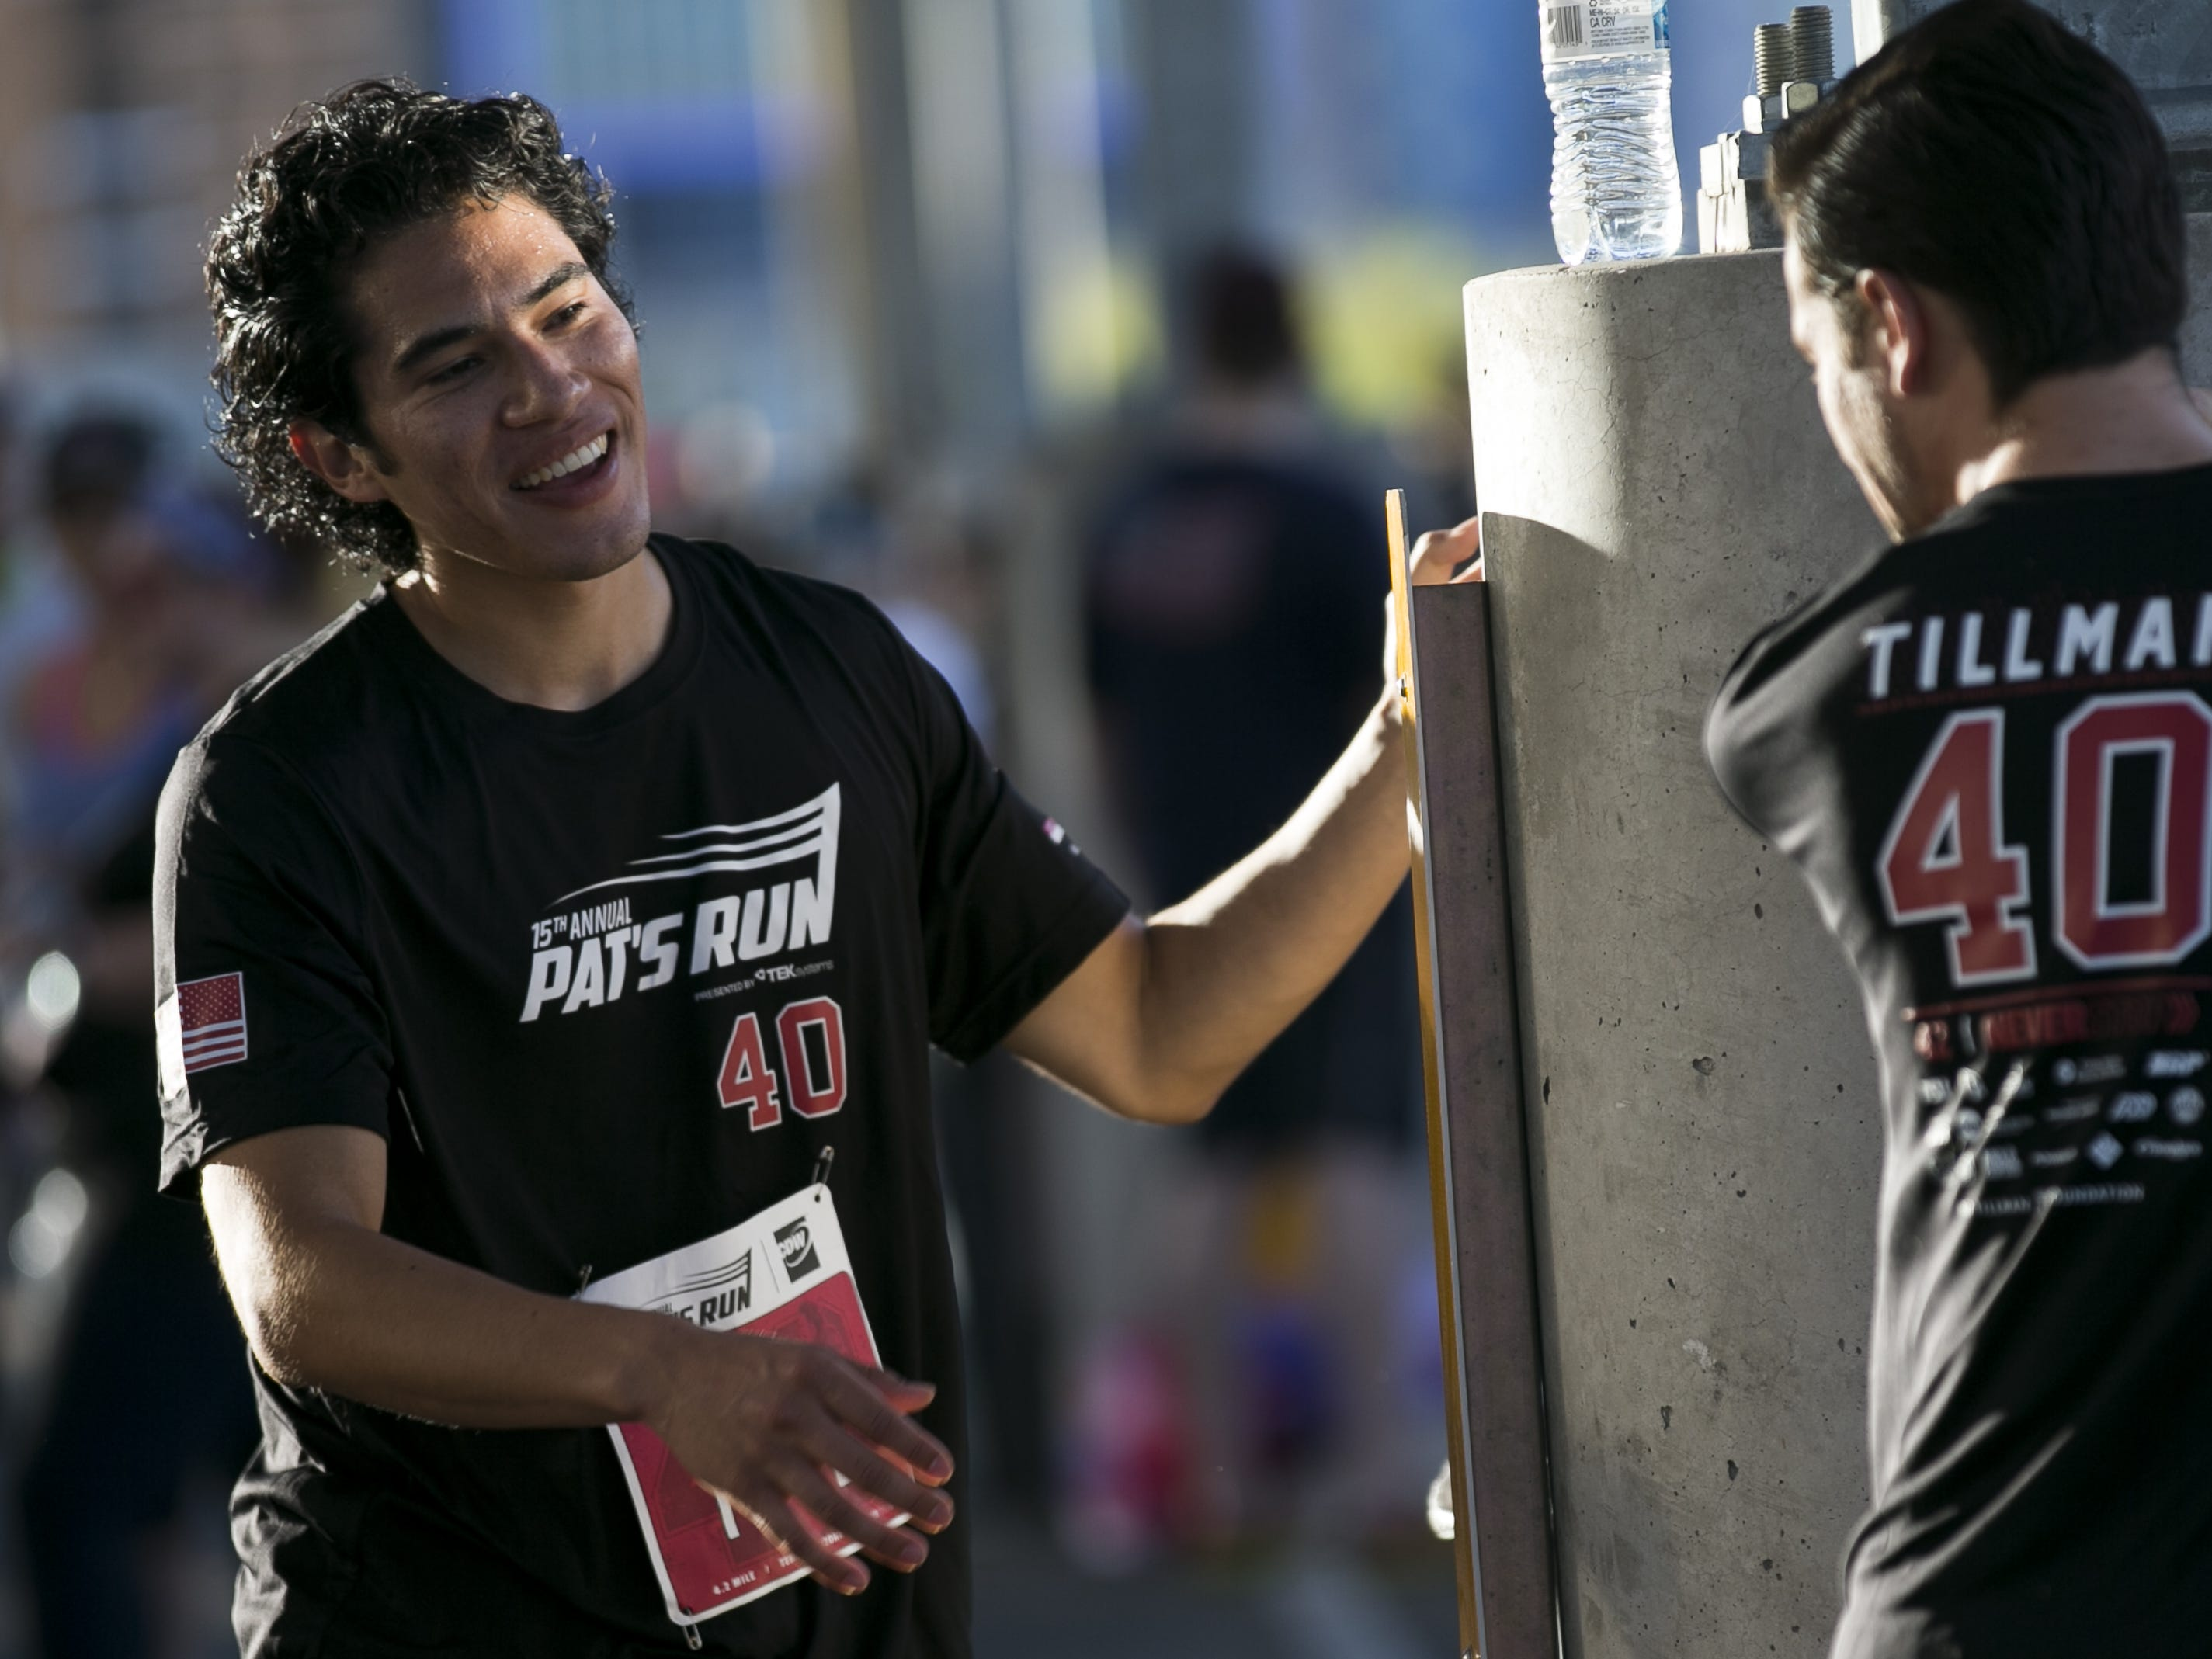 Diego Yanez (left) stretches before participating in Pat's Run 2019 in Tempe on April 27, 2019.